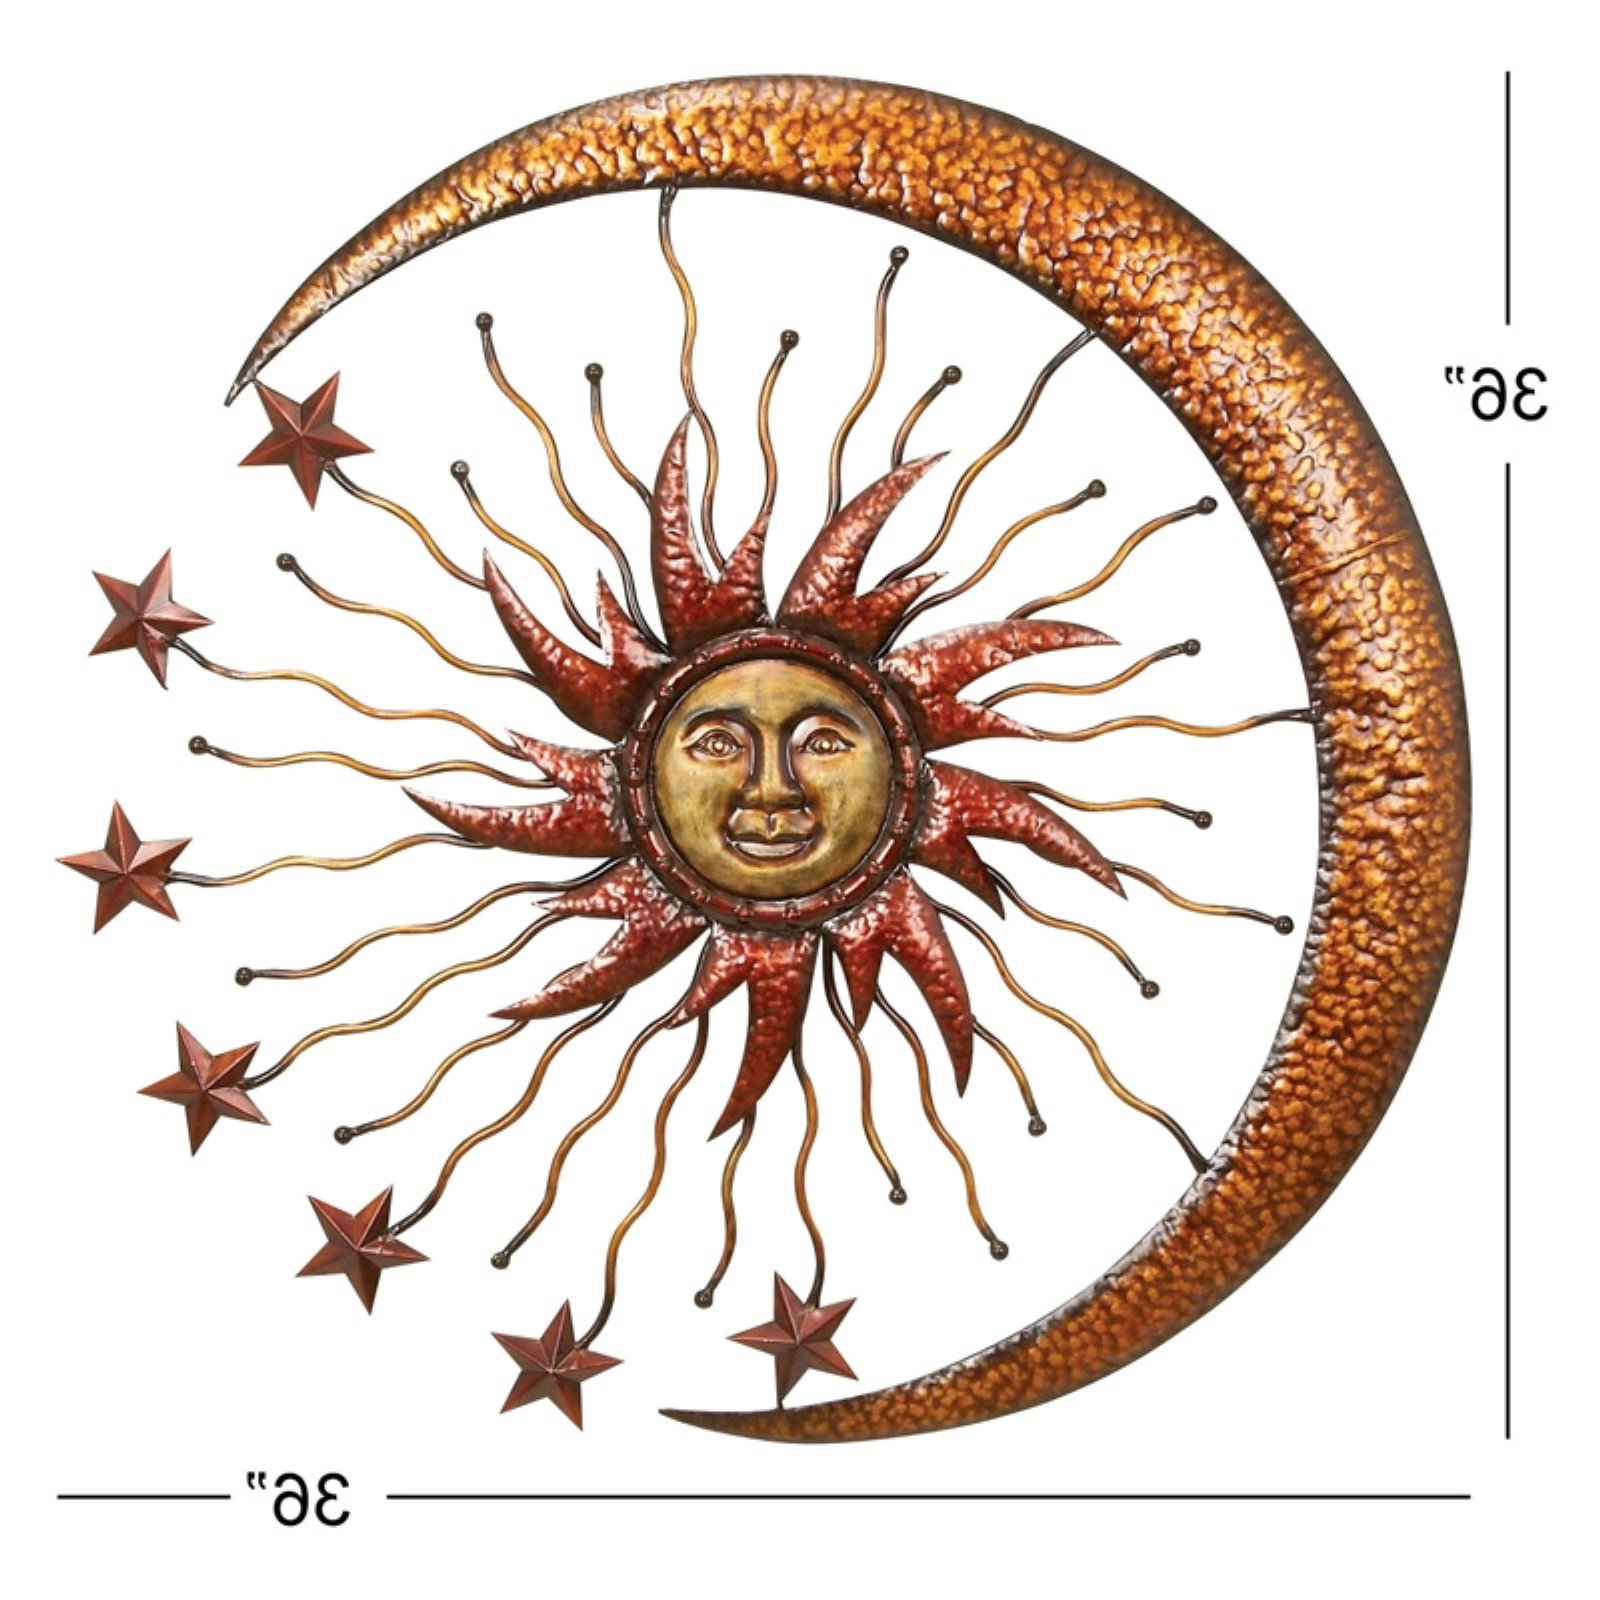 Newest Sun And Moon Metal Wall Art Regarding New Sun Moon Star Wall Decor Art Sculpture Hanging Display Metal (View 6 of 15)